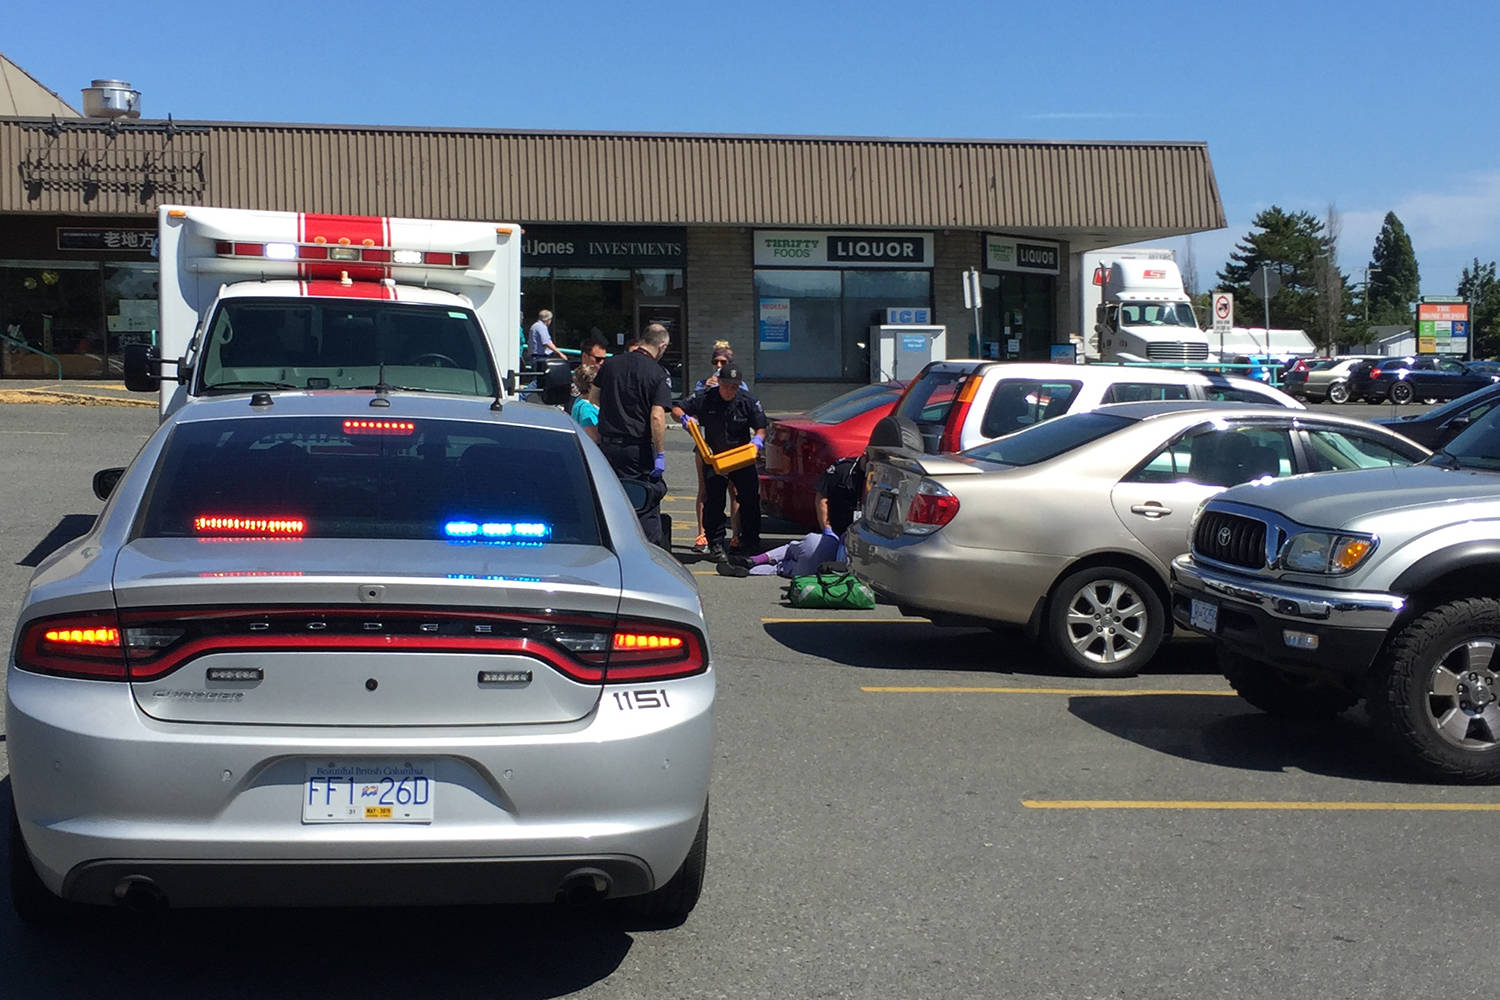 update: woman hitcar in parking lot 93 years old – victoria news